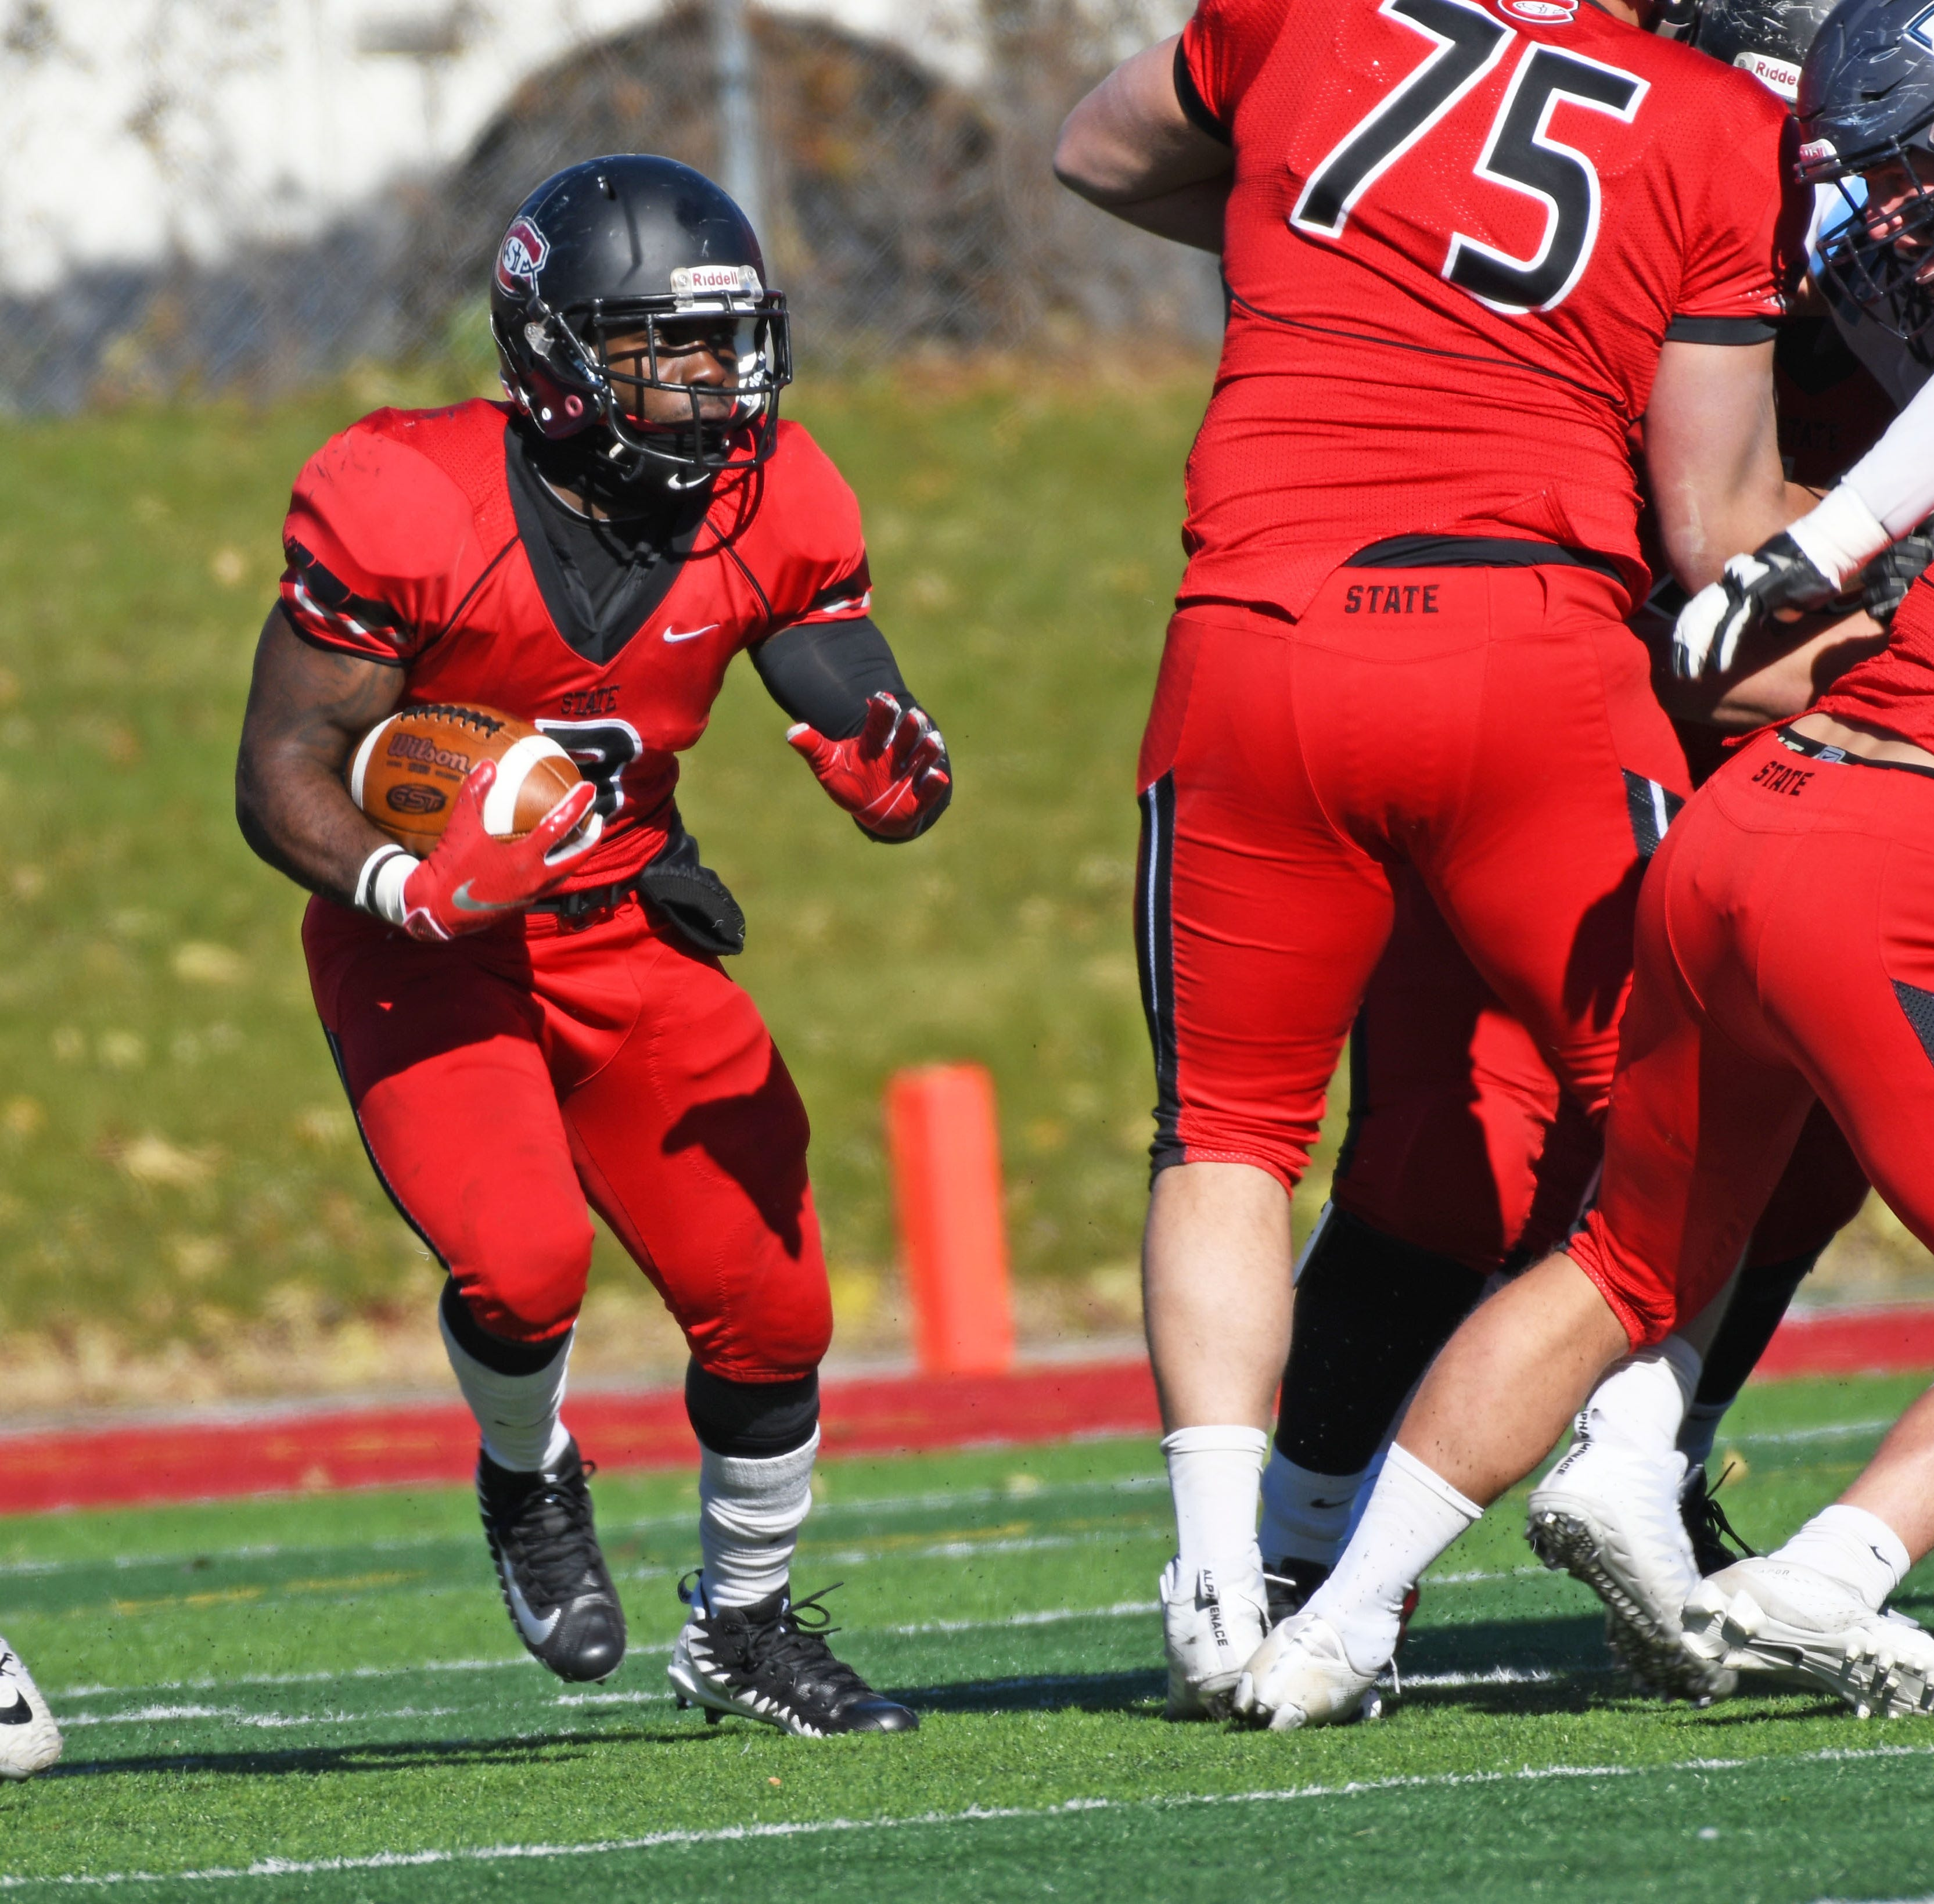 St. Cloud State senior running back Gregory Lewis carries the ball against Upper Iowa on Saturday at Husky Stadium. Lewis had 36 carries for 167 yards and a touchdown in the Huskies' 34-14 homecoming win.